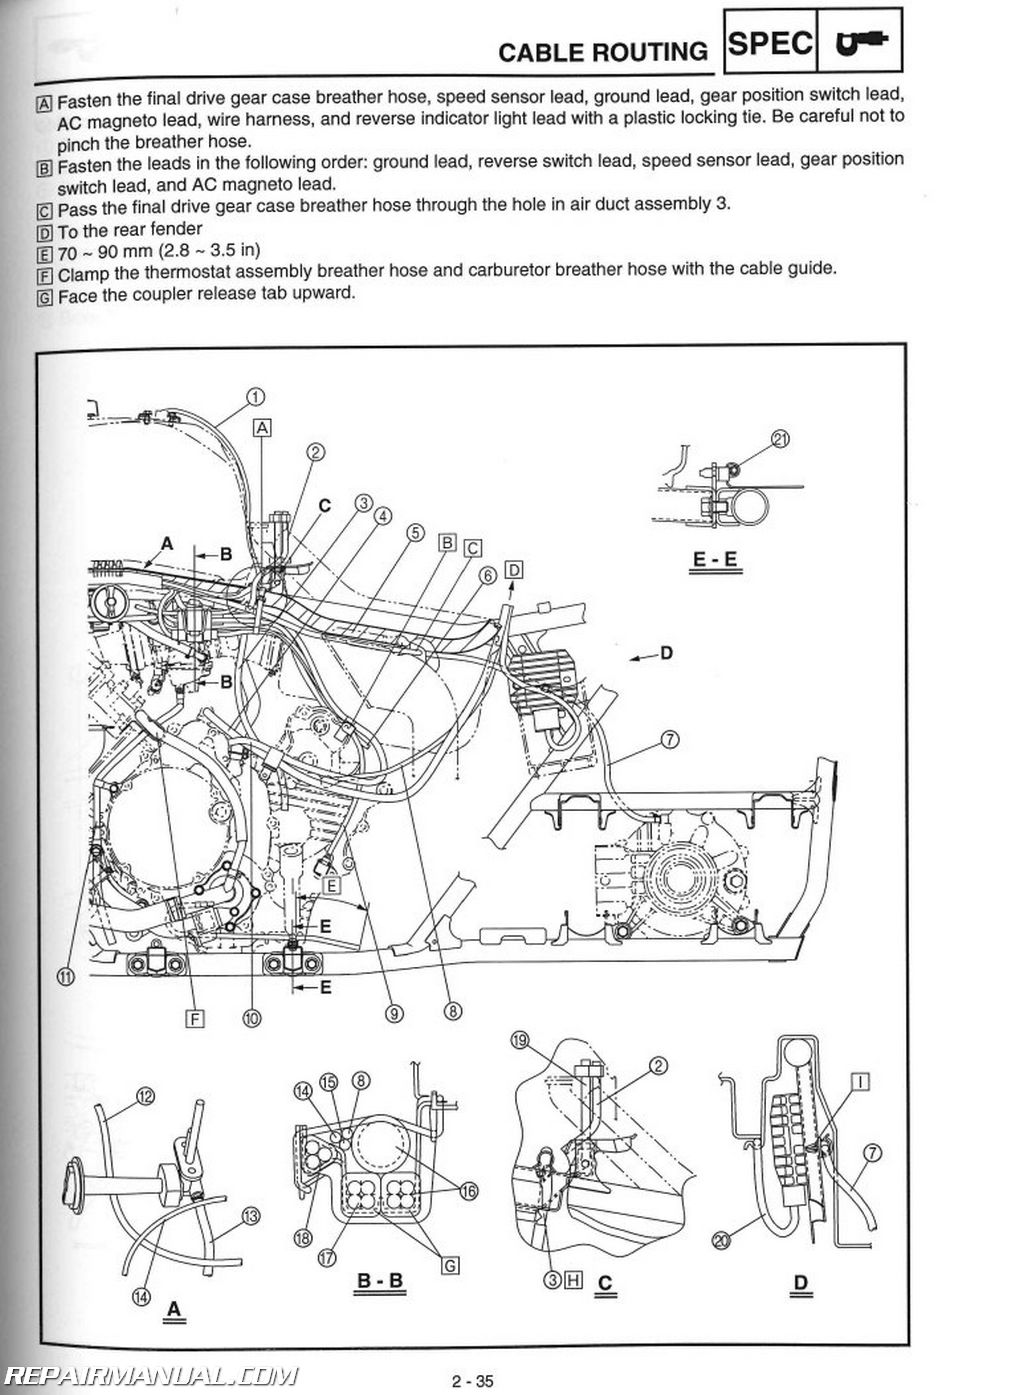 yfm660fa grizzly 660 yamaha atv service manual 2003 2008 rh repairmanual  com 1999 Yamaha Grizzly 600 Wiring Diagram Yamaha Grizzly 600 Schematic